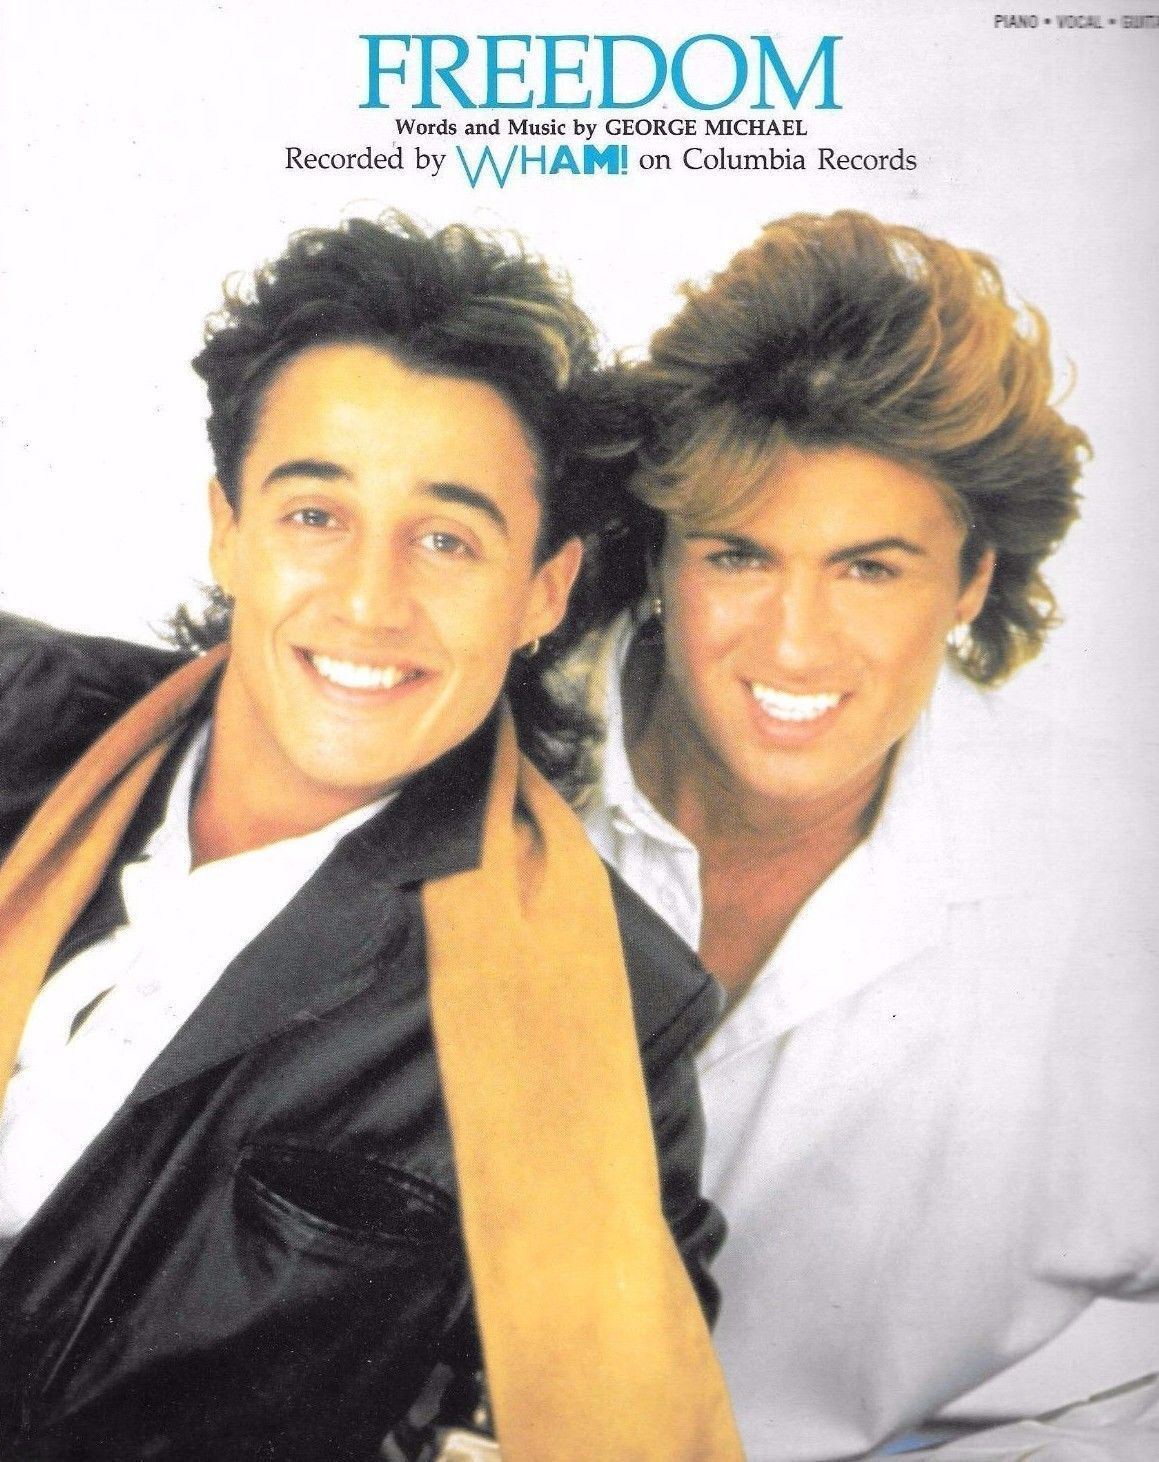 Wham George Michael Freedom Piano Vocal Guitar Sheet Music Rare On Sale New George Michael George Michael Wham Andrew Ridgeley